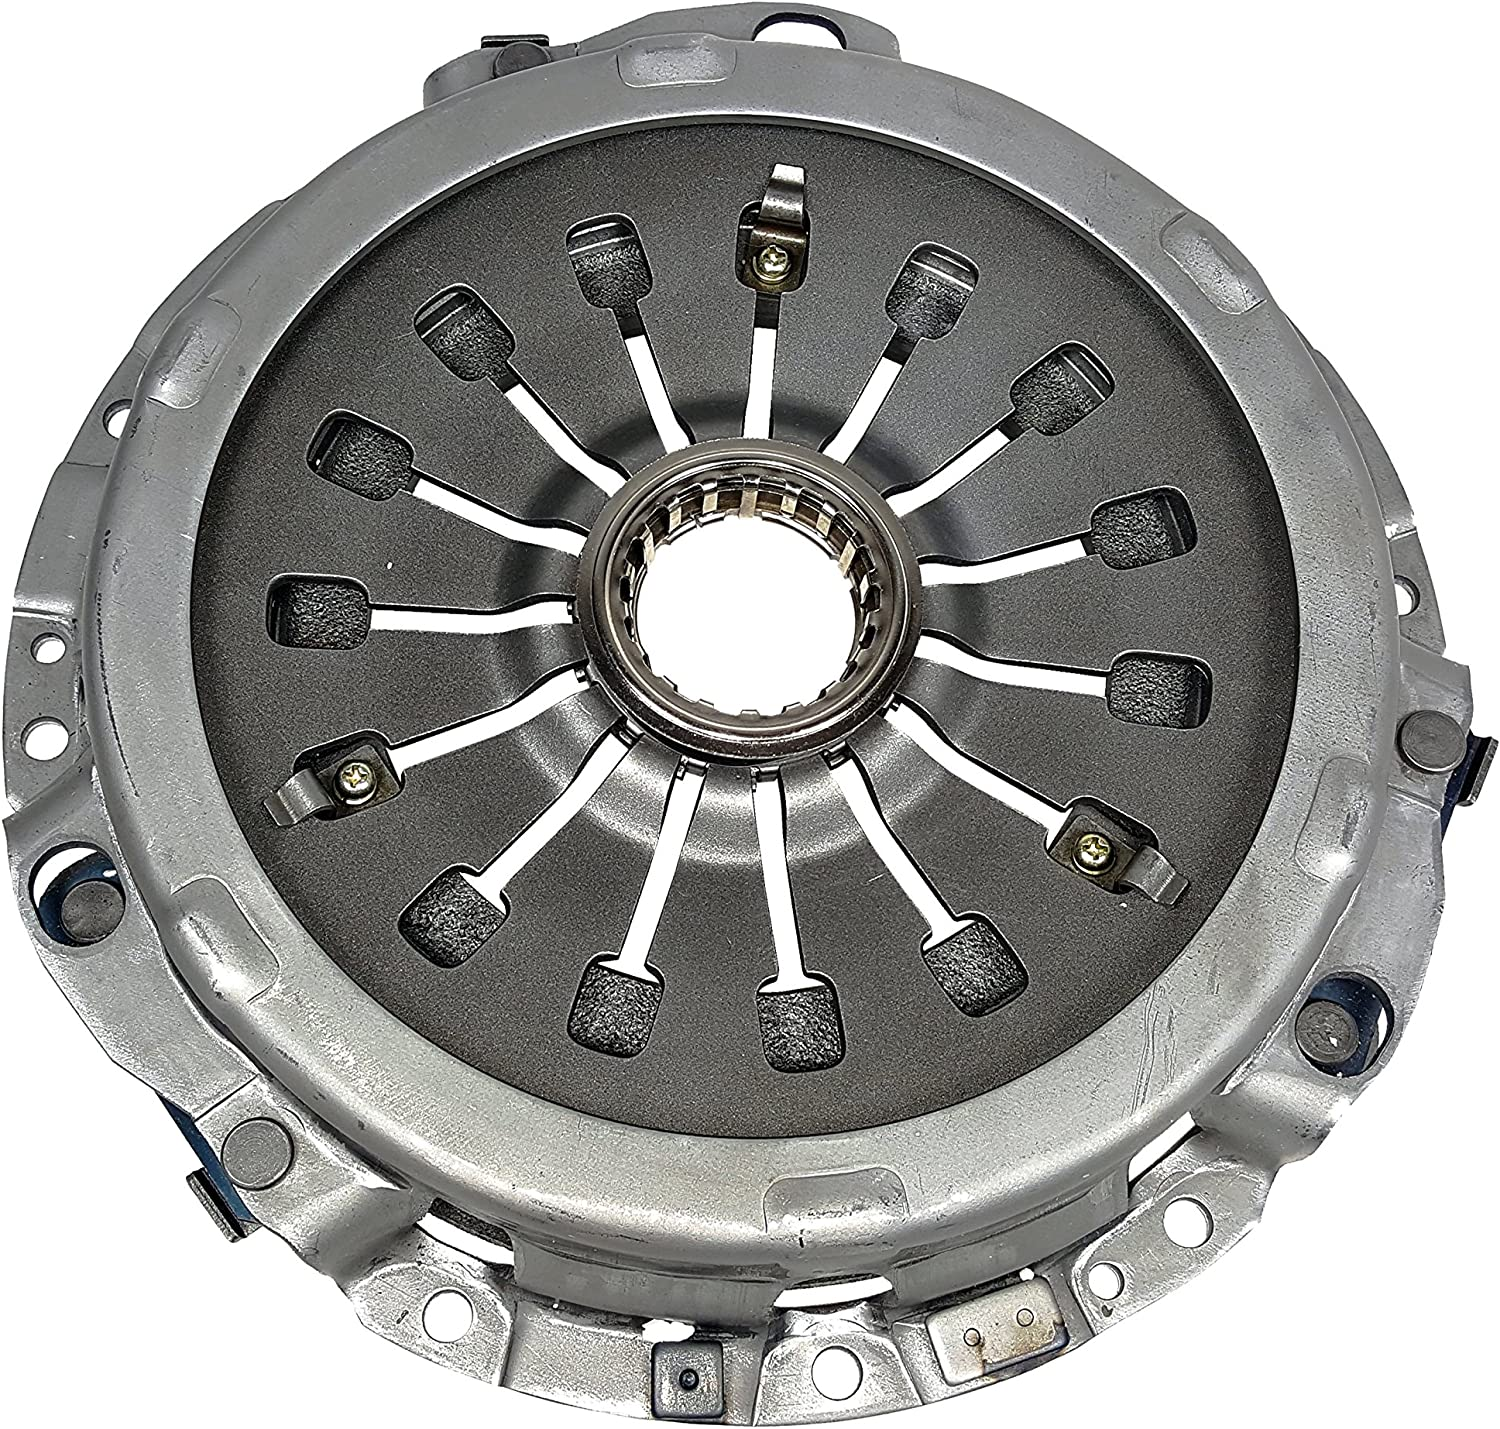 Clutch Kit works with Nissan Pathfinder Se Le Xe Sport Utility 4-Door 2001-2003 3.5L 3498CC V6 GAS DOHC Naturally Aspirated